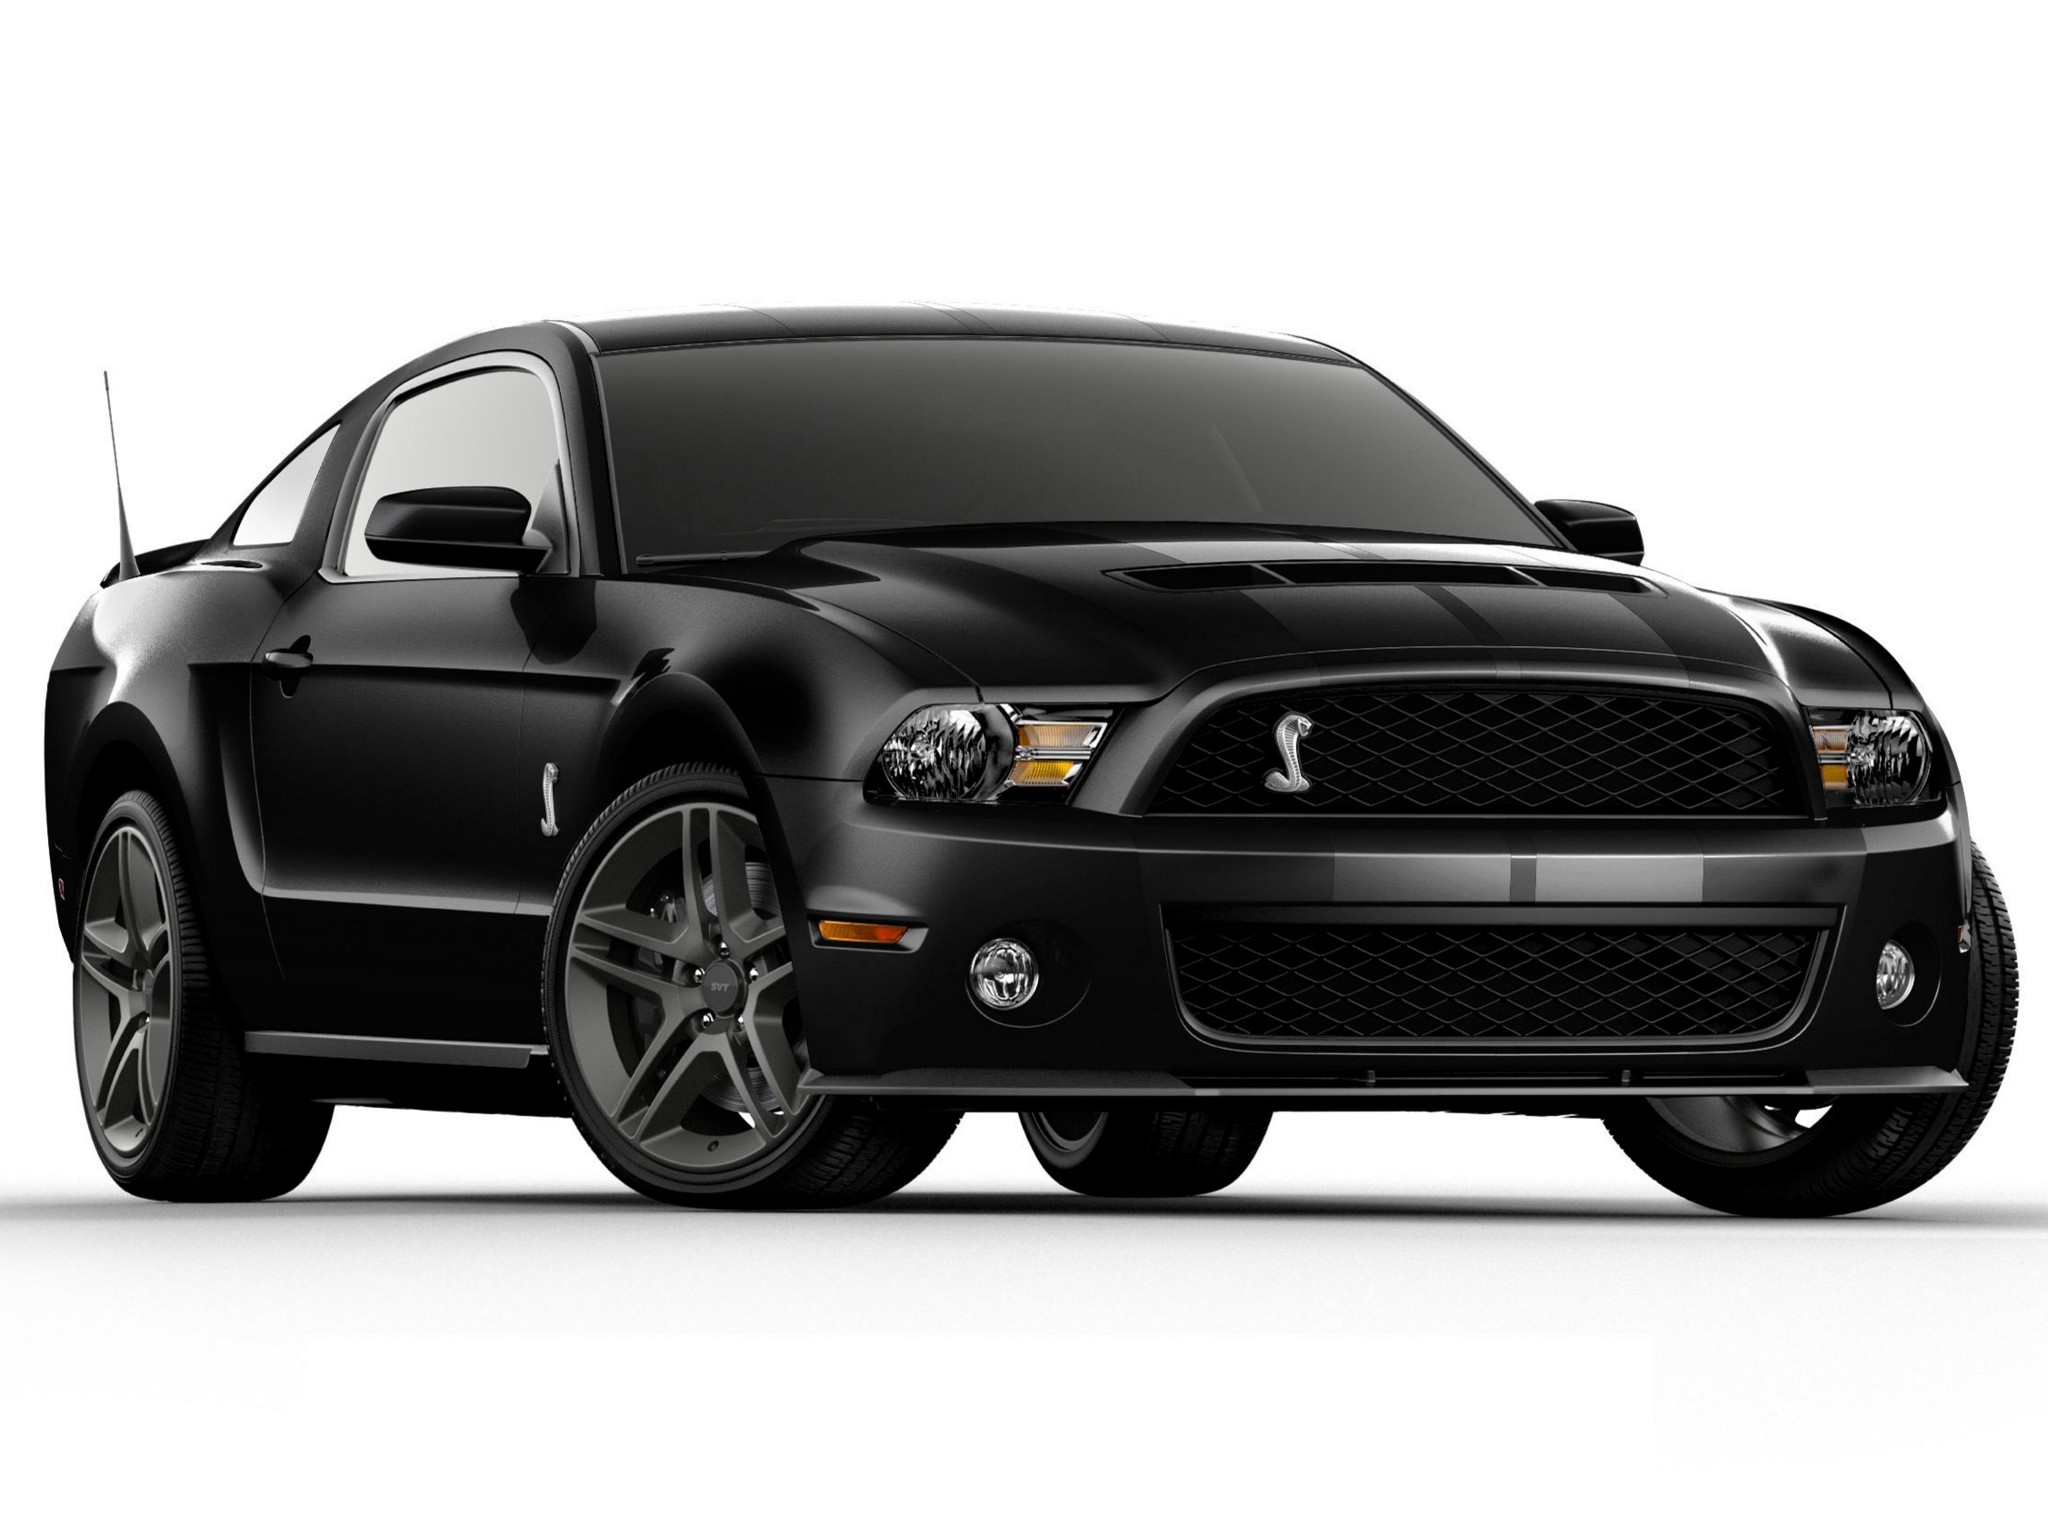 ford mustang shelby gt500 specs photos 2009 2010 2011 2012 autoevolution. Black Bedroom Furniture Sets. Home Design Ideas